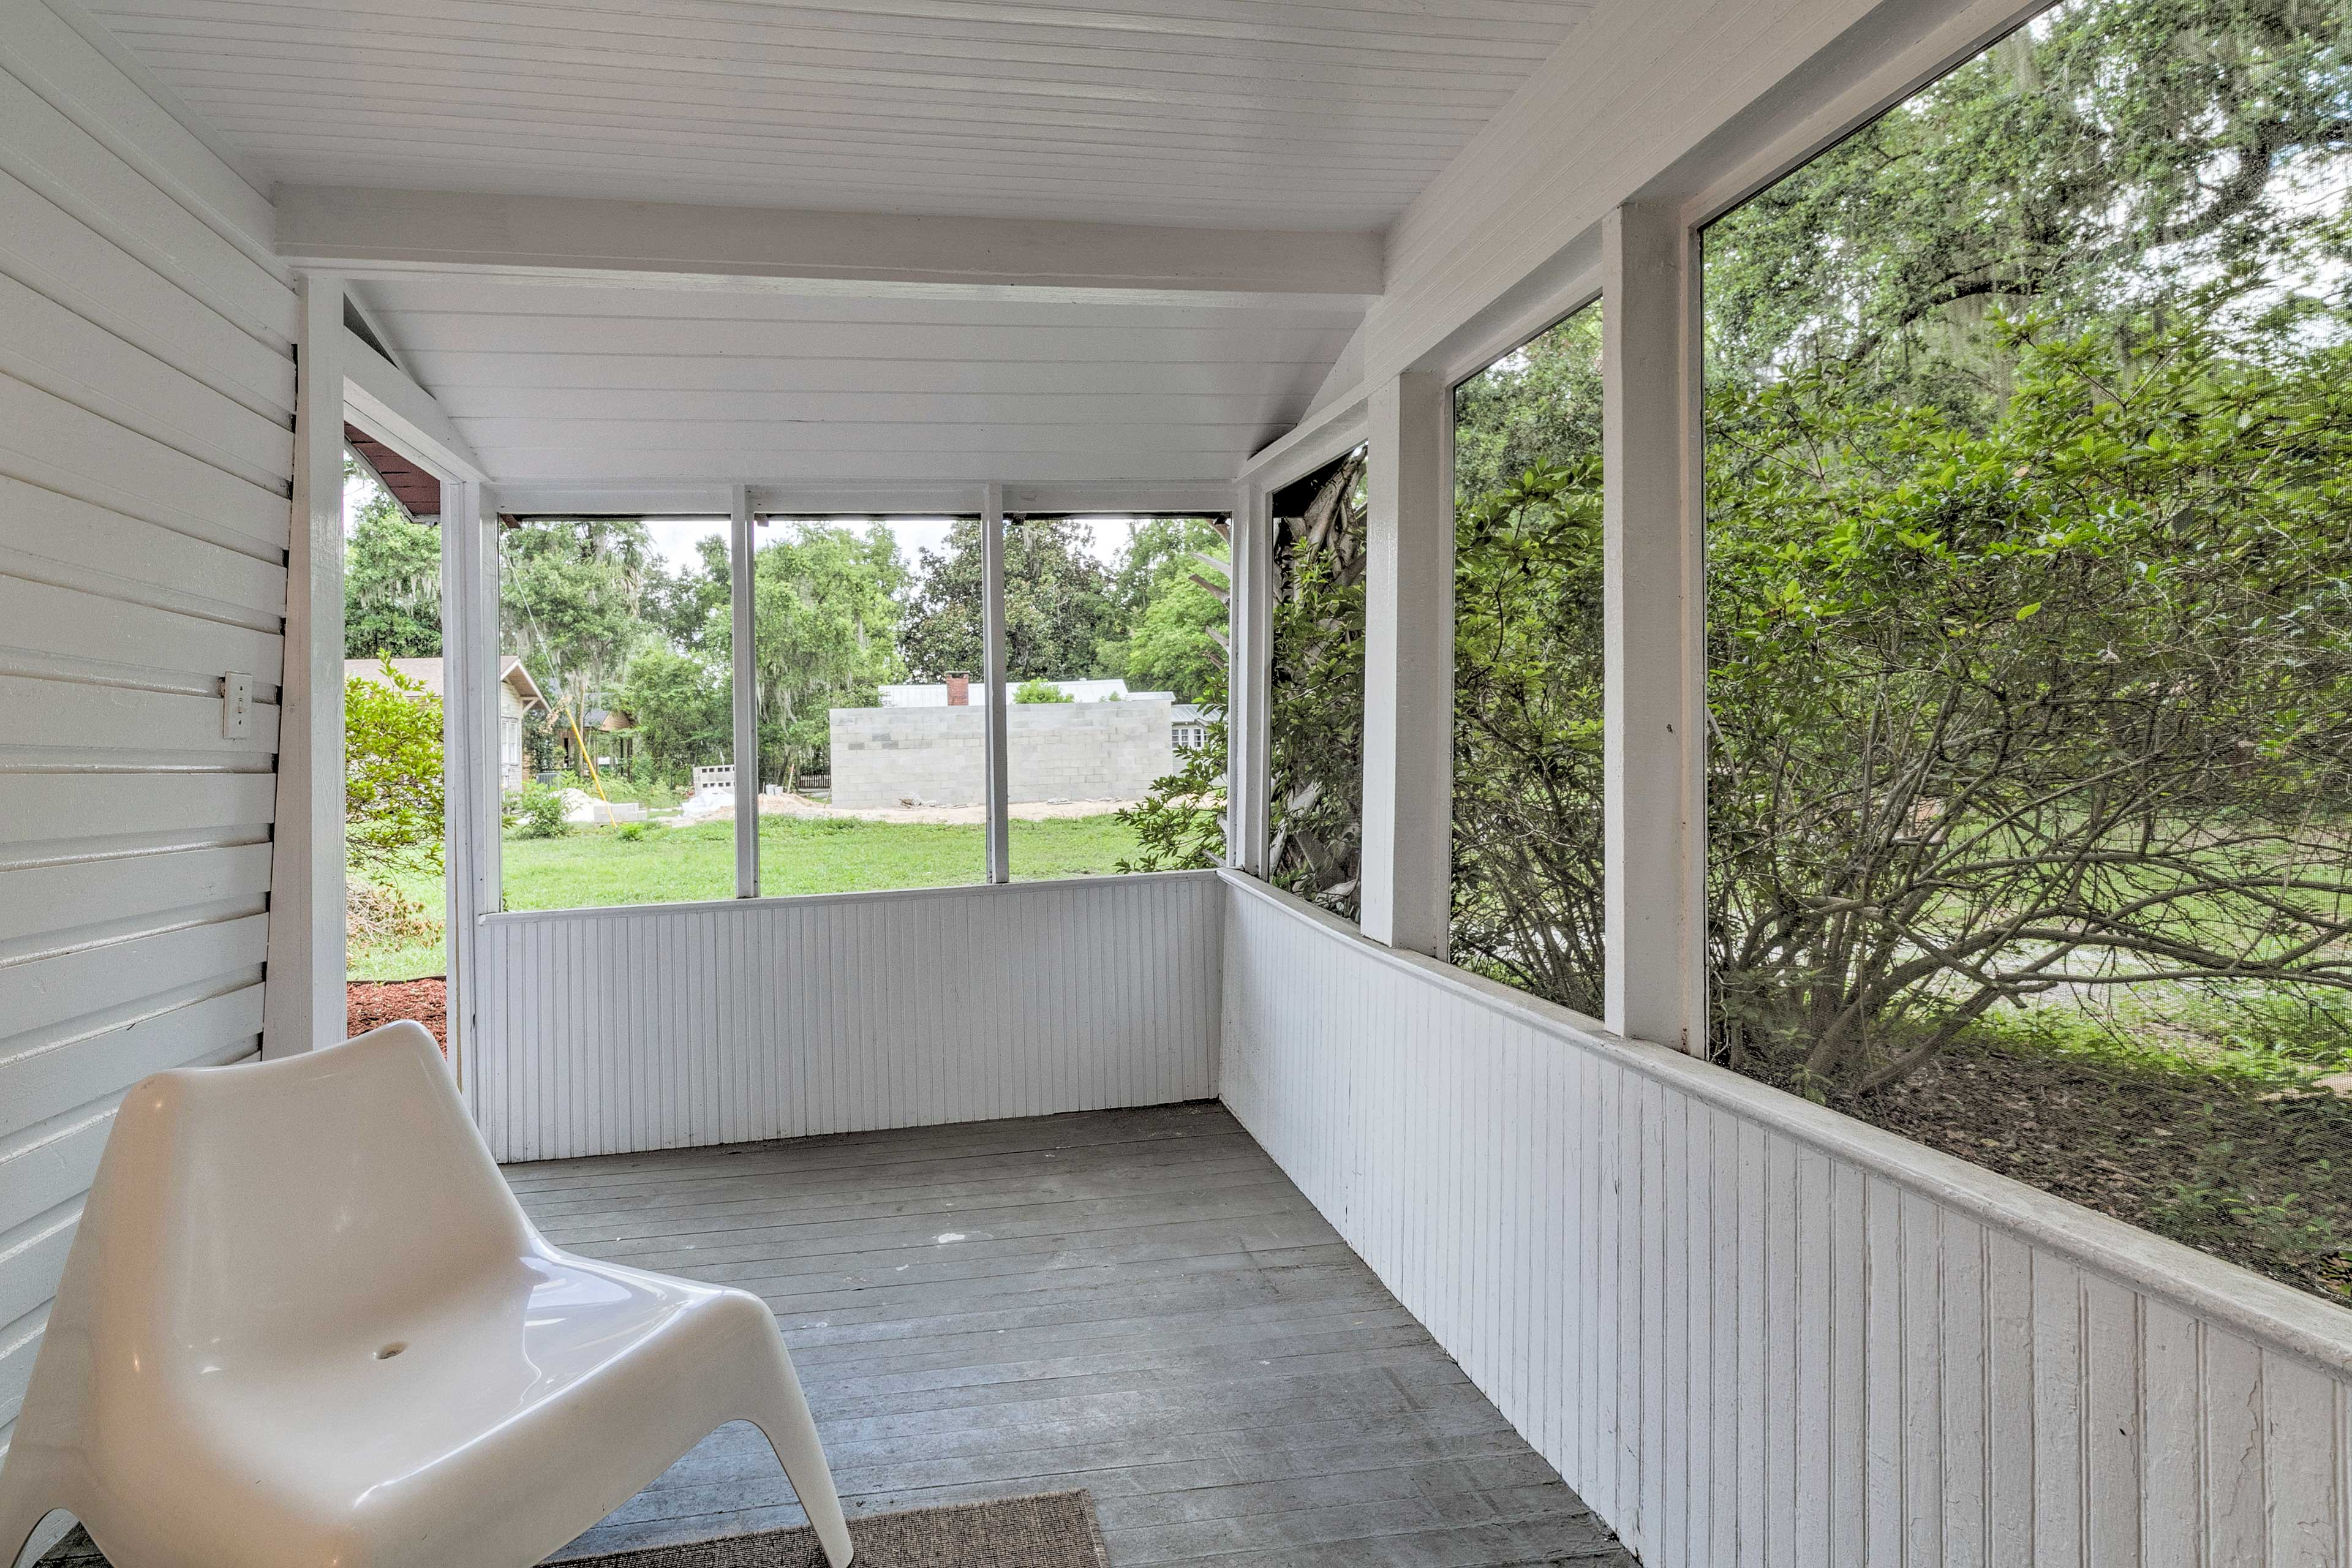 Take in the scenery from the covered porch.